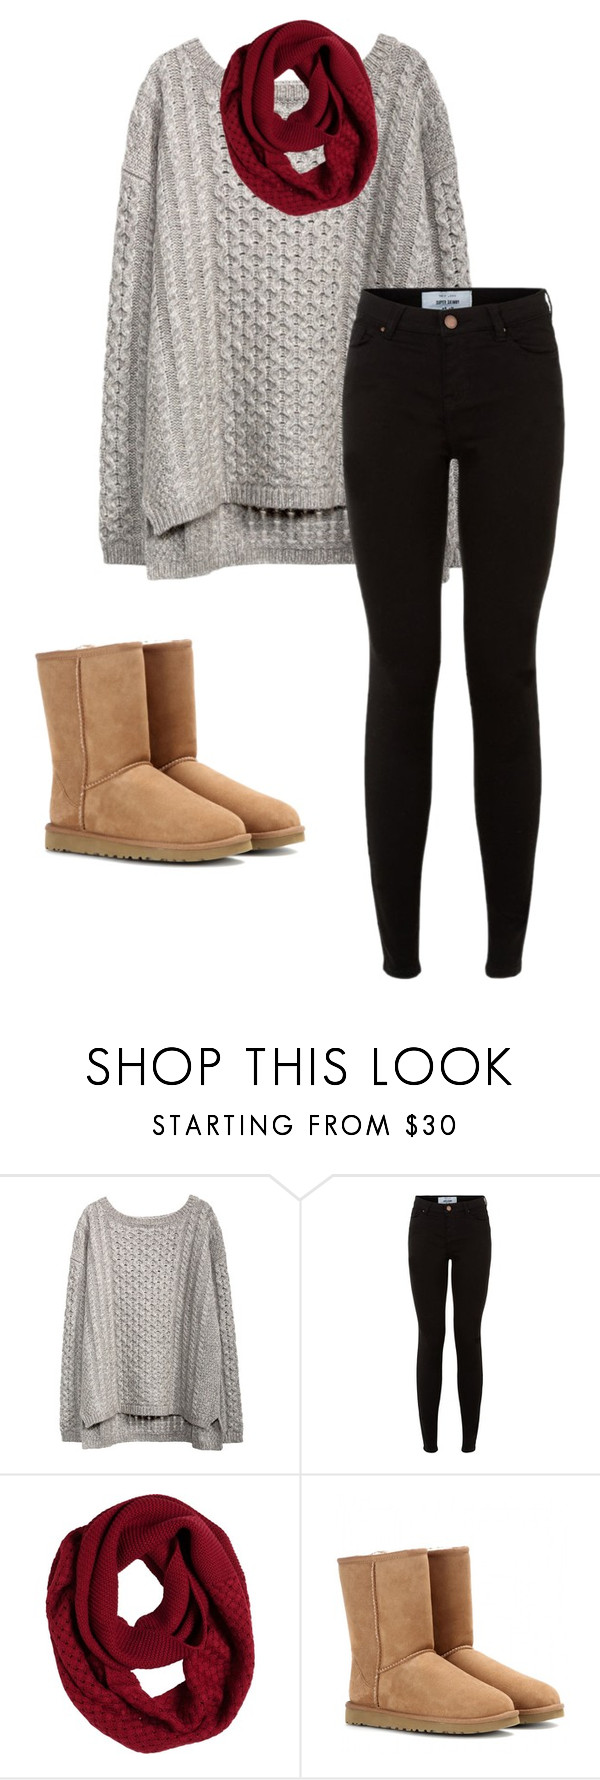 """""""Untitled #85"""" by mari-890 ❤ liked on Polyvore featuring prAna and UGG Australia"""